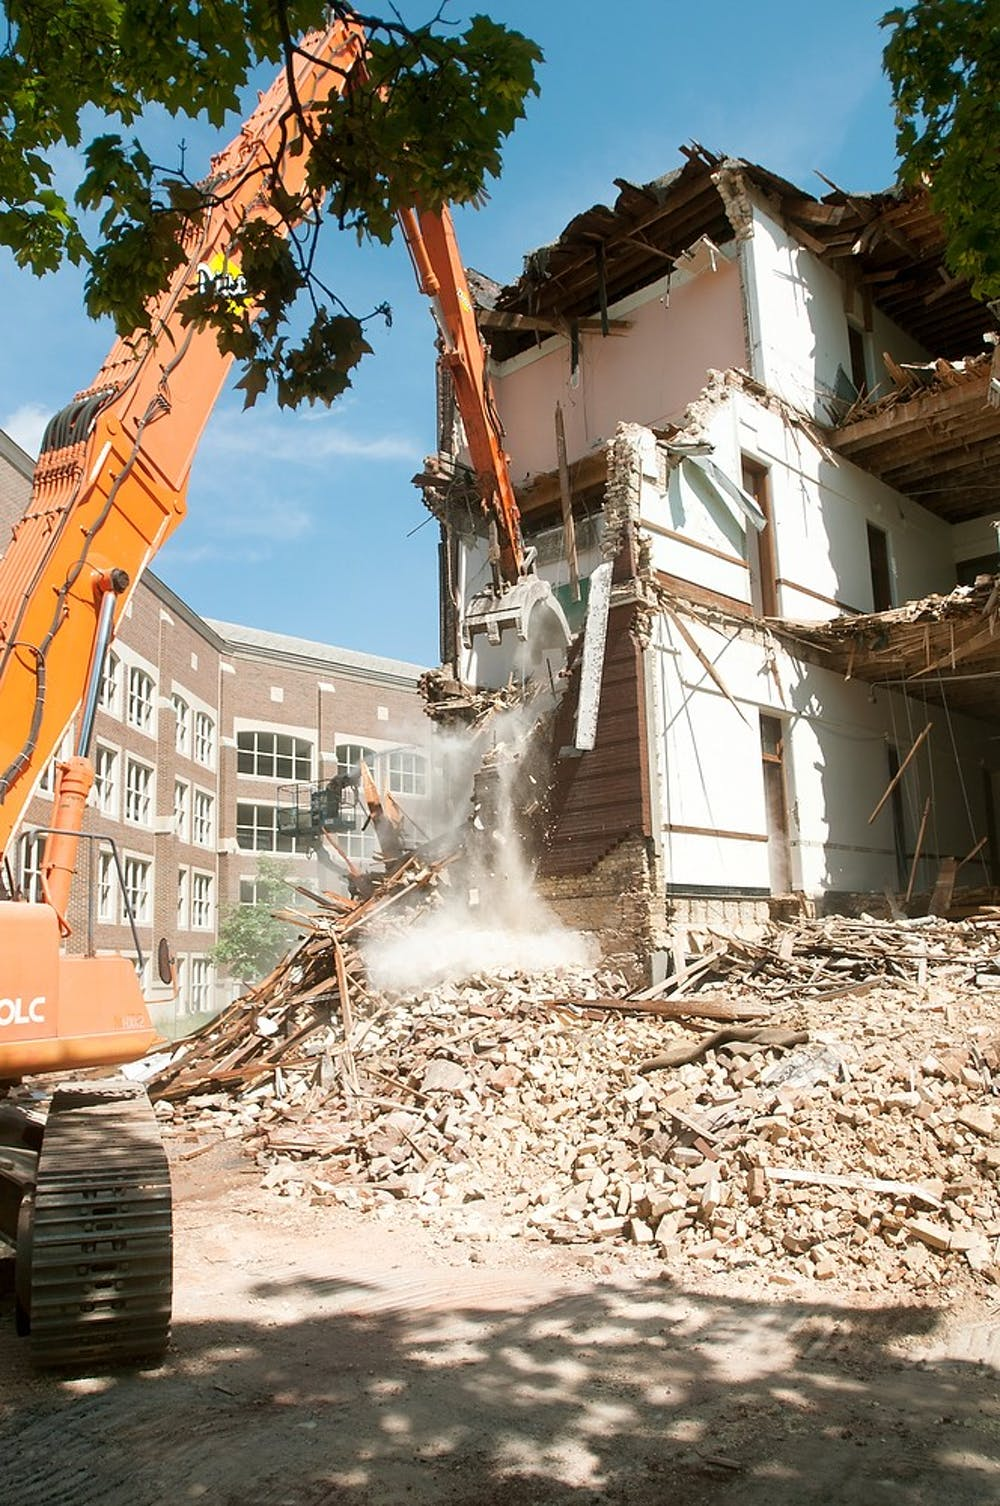 <p>Morrill Hall demolition continues June 4, 2013. Demolition started June 3, 2013. Weston Brooks/The State News</p>